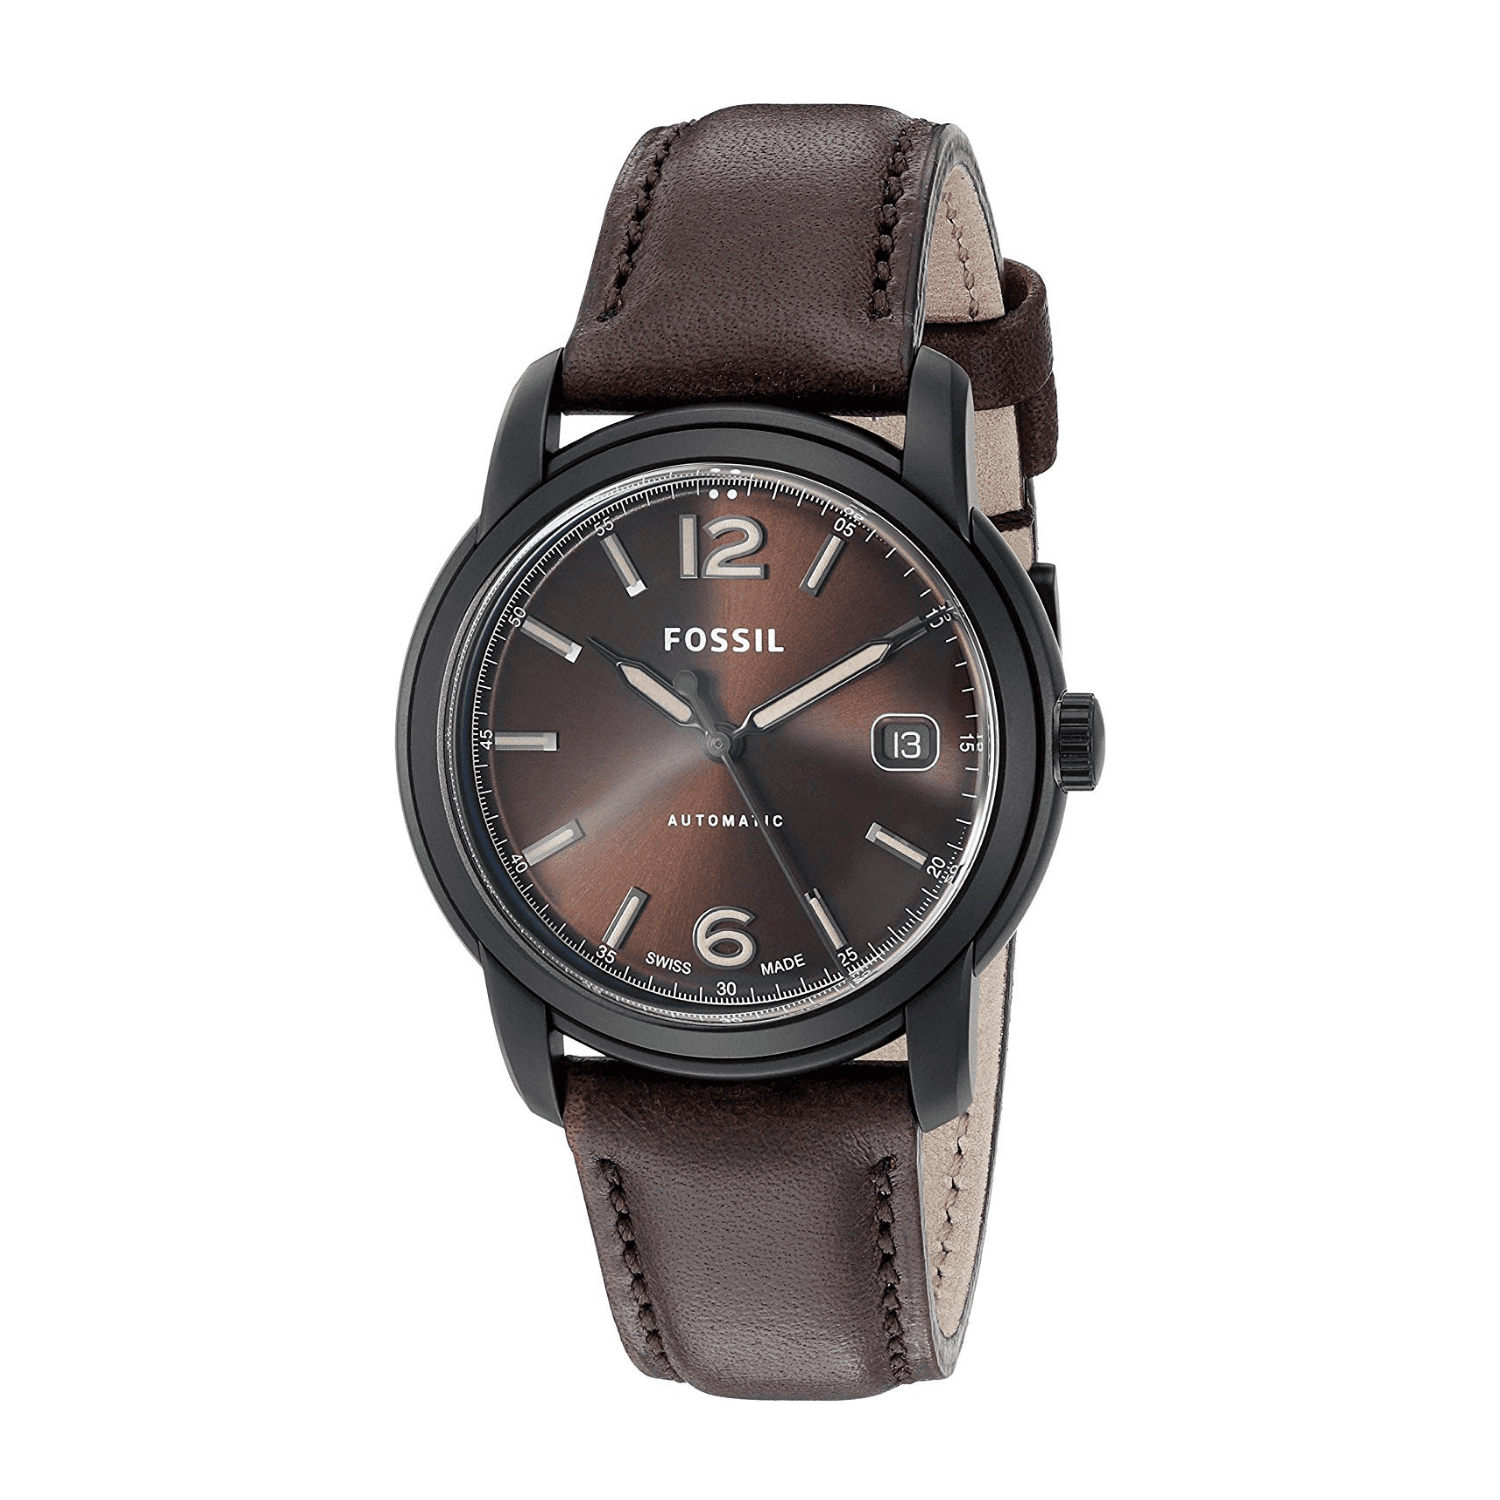 Fossil FSW1007 Self-Illuminating Field Watch 38mm